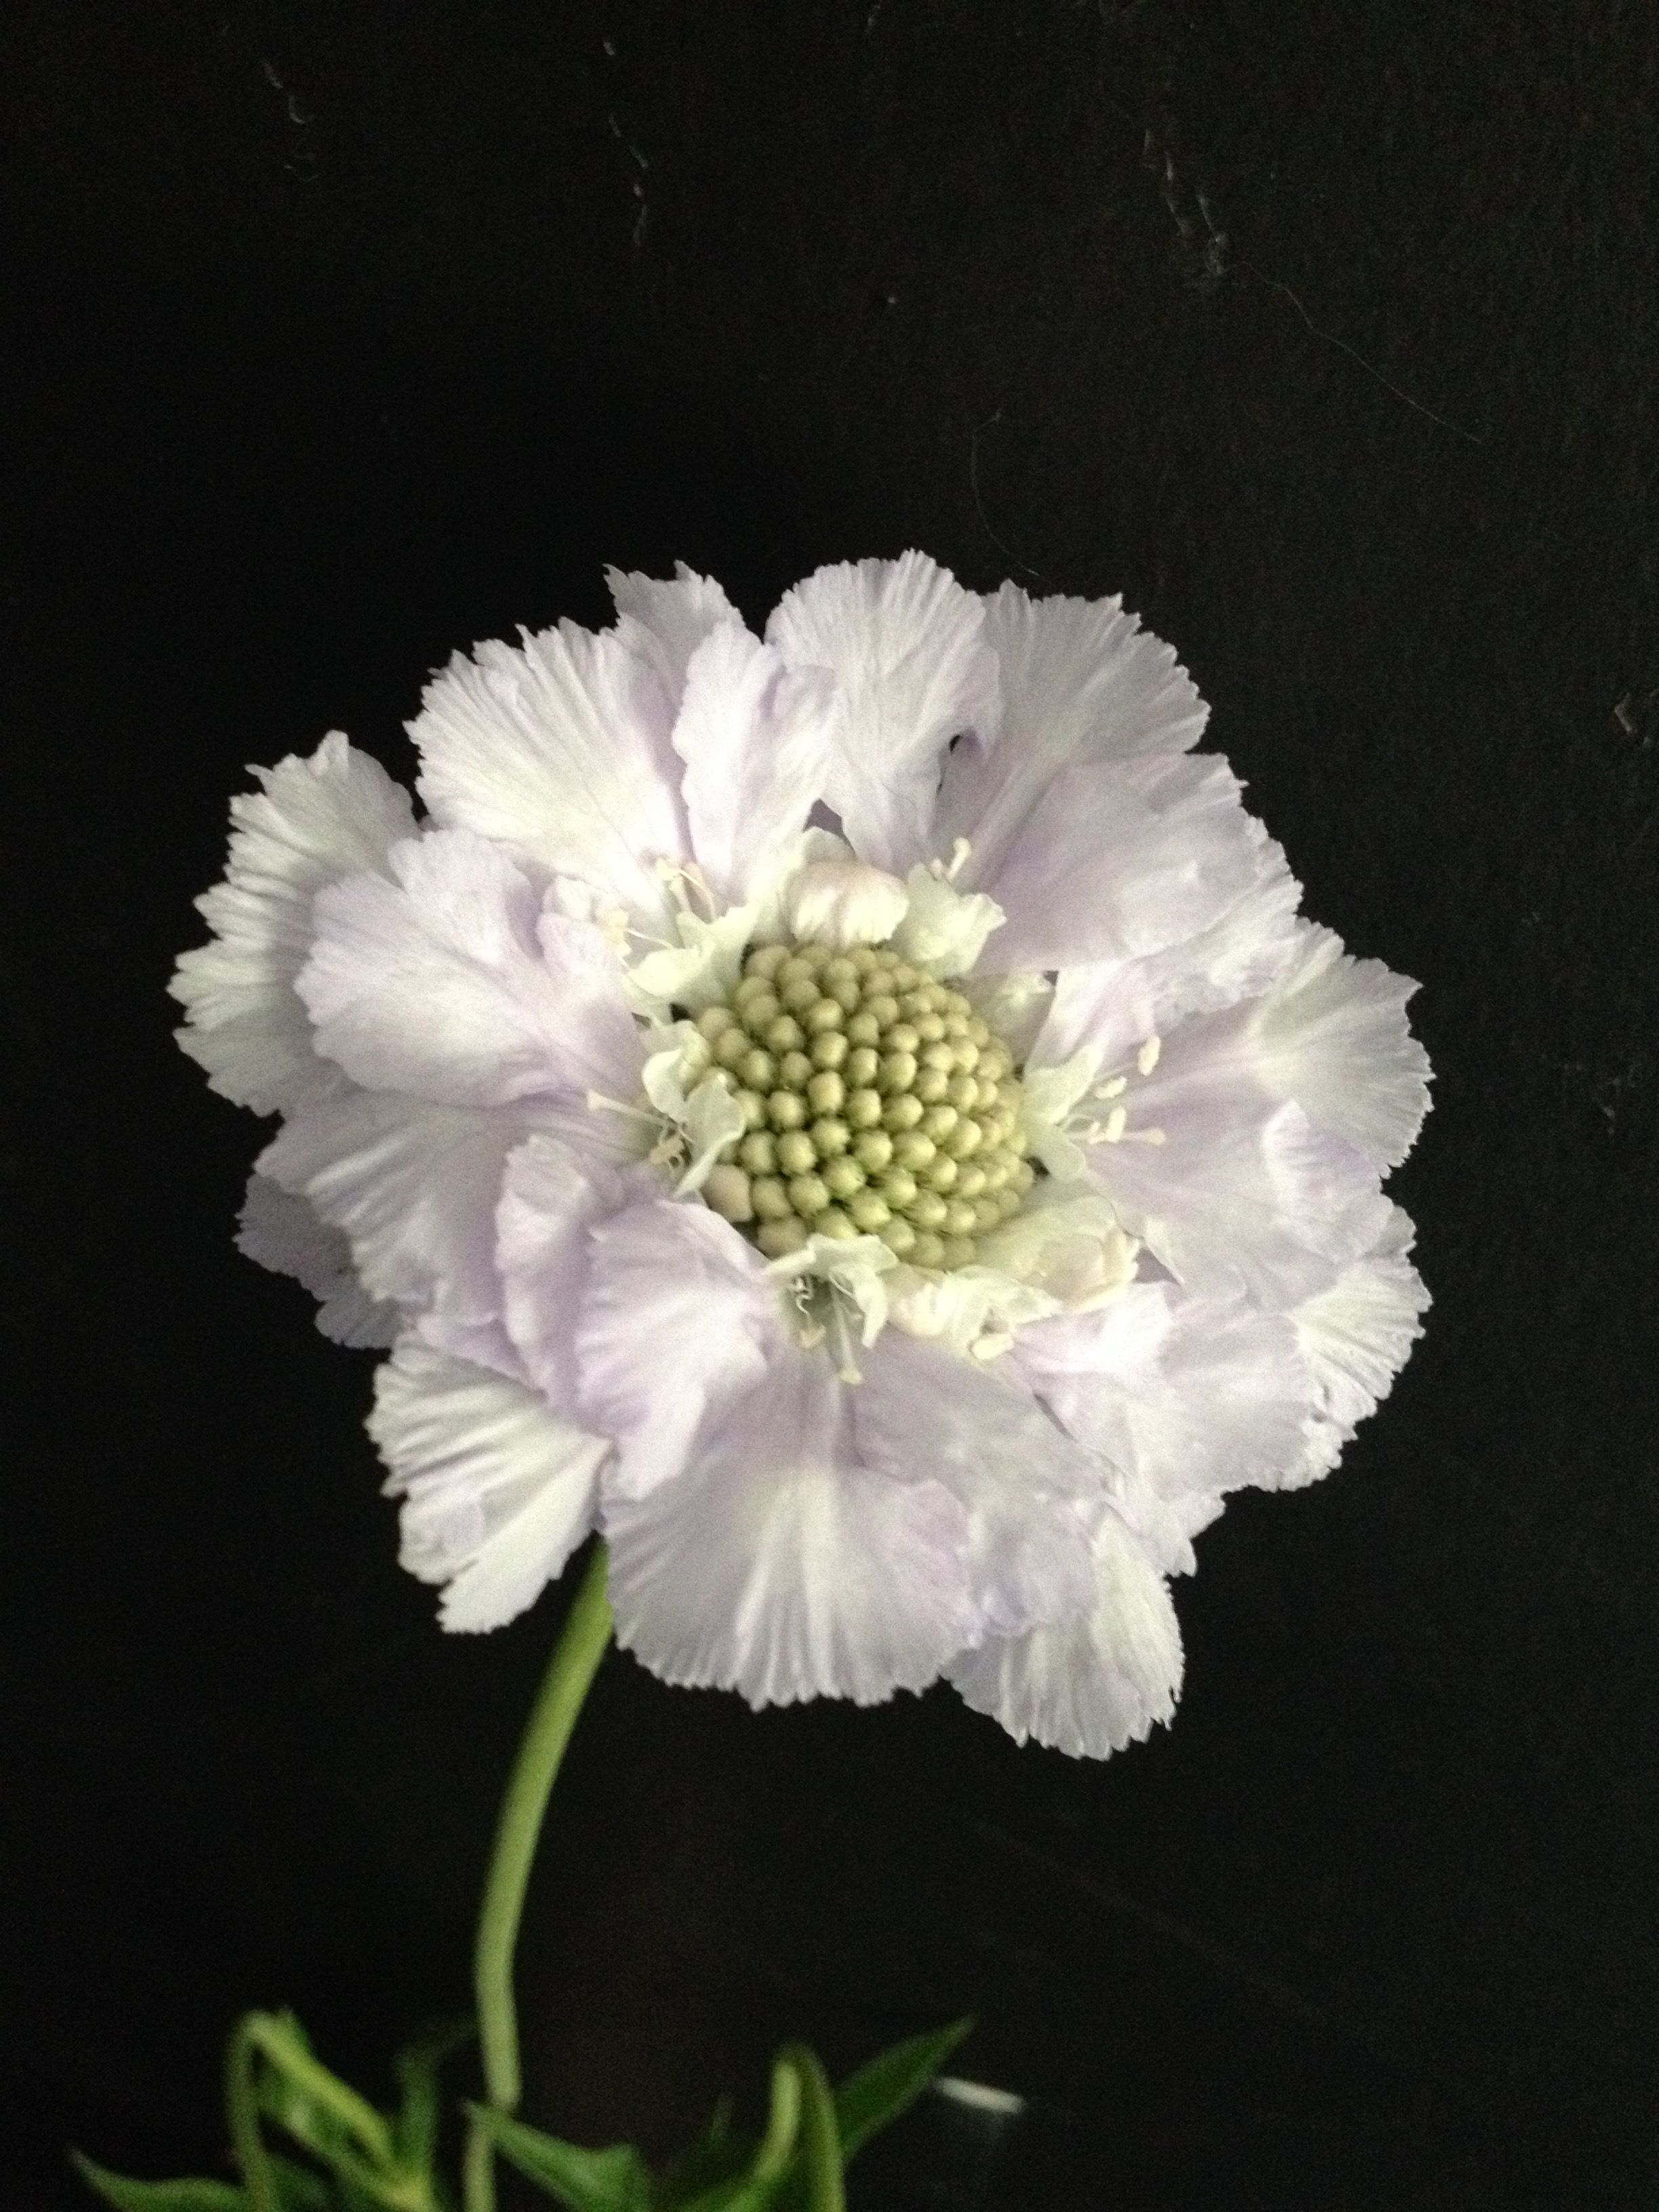 White Scabious This Is The White Version Of The Pale Blue Flowers